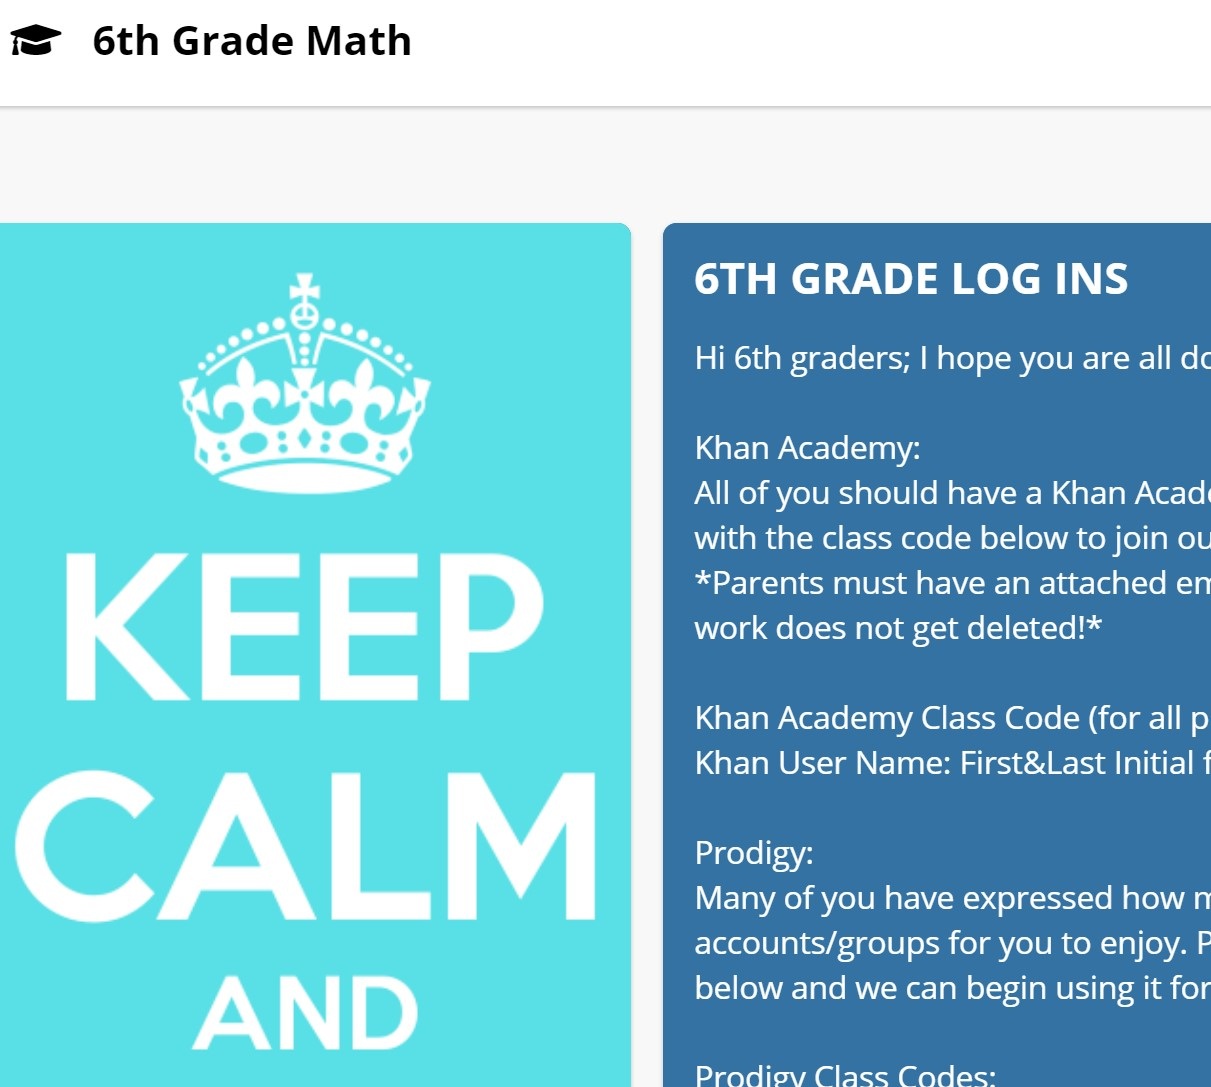 Click here for 6th Grade Math